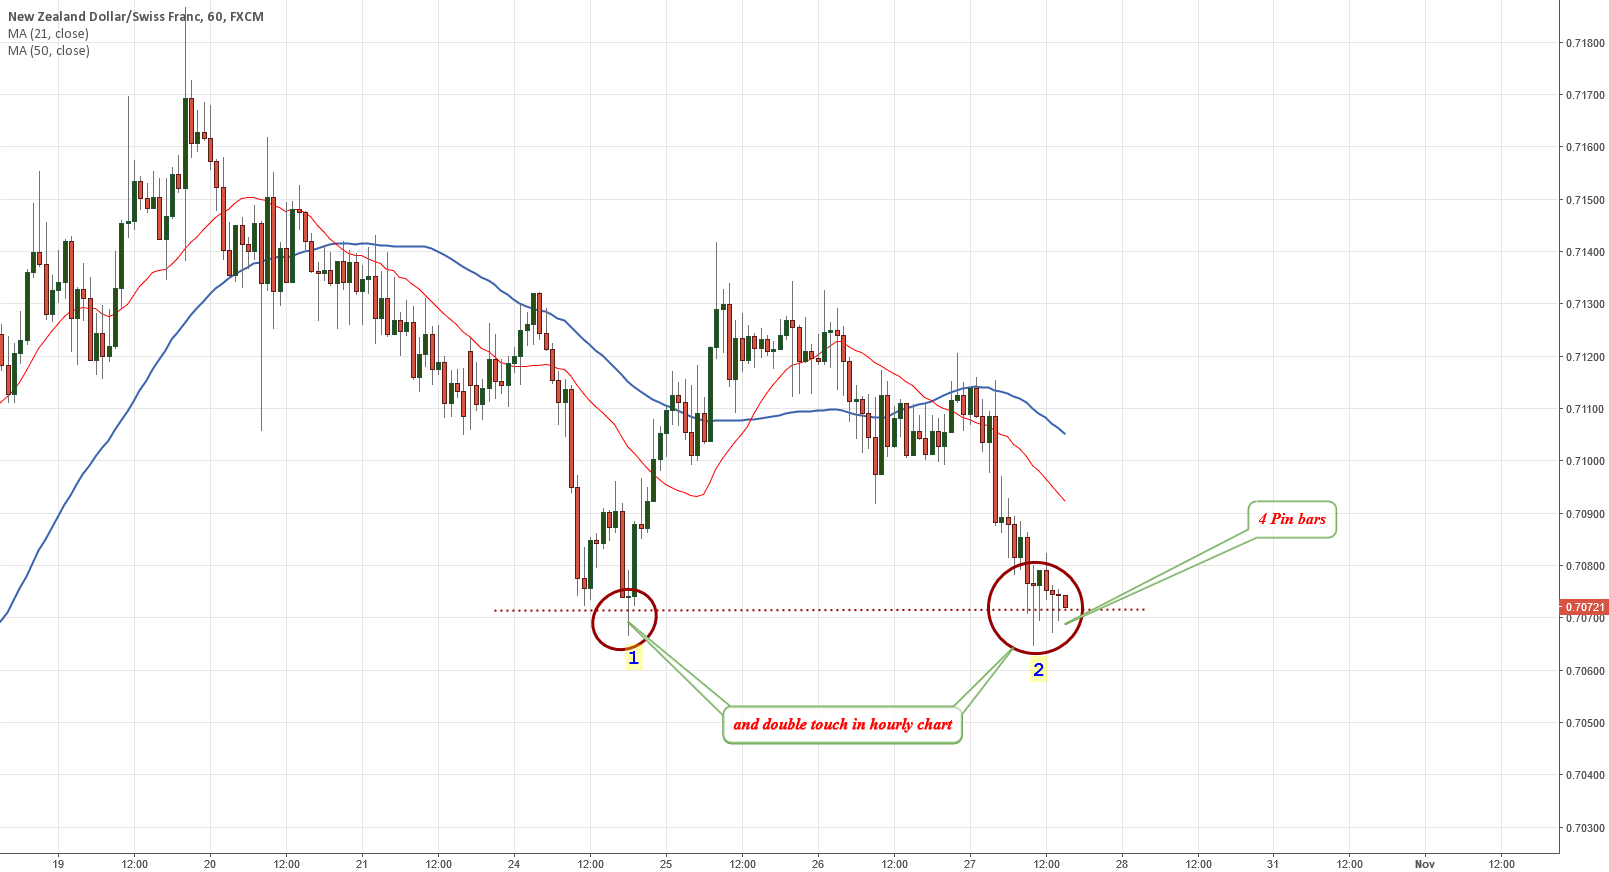 nzdchf double touch down and a few pin bar confirm the LONG